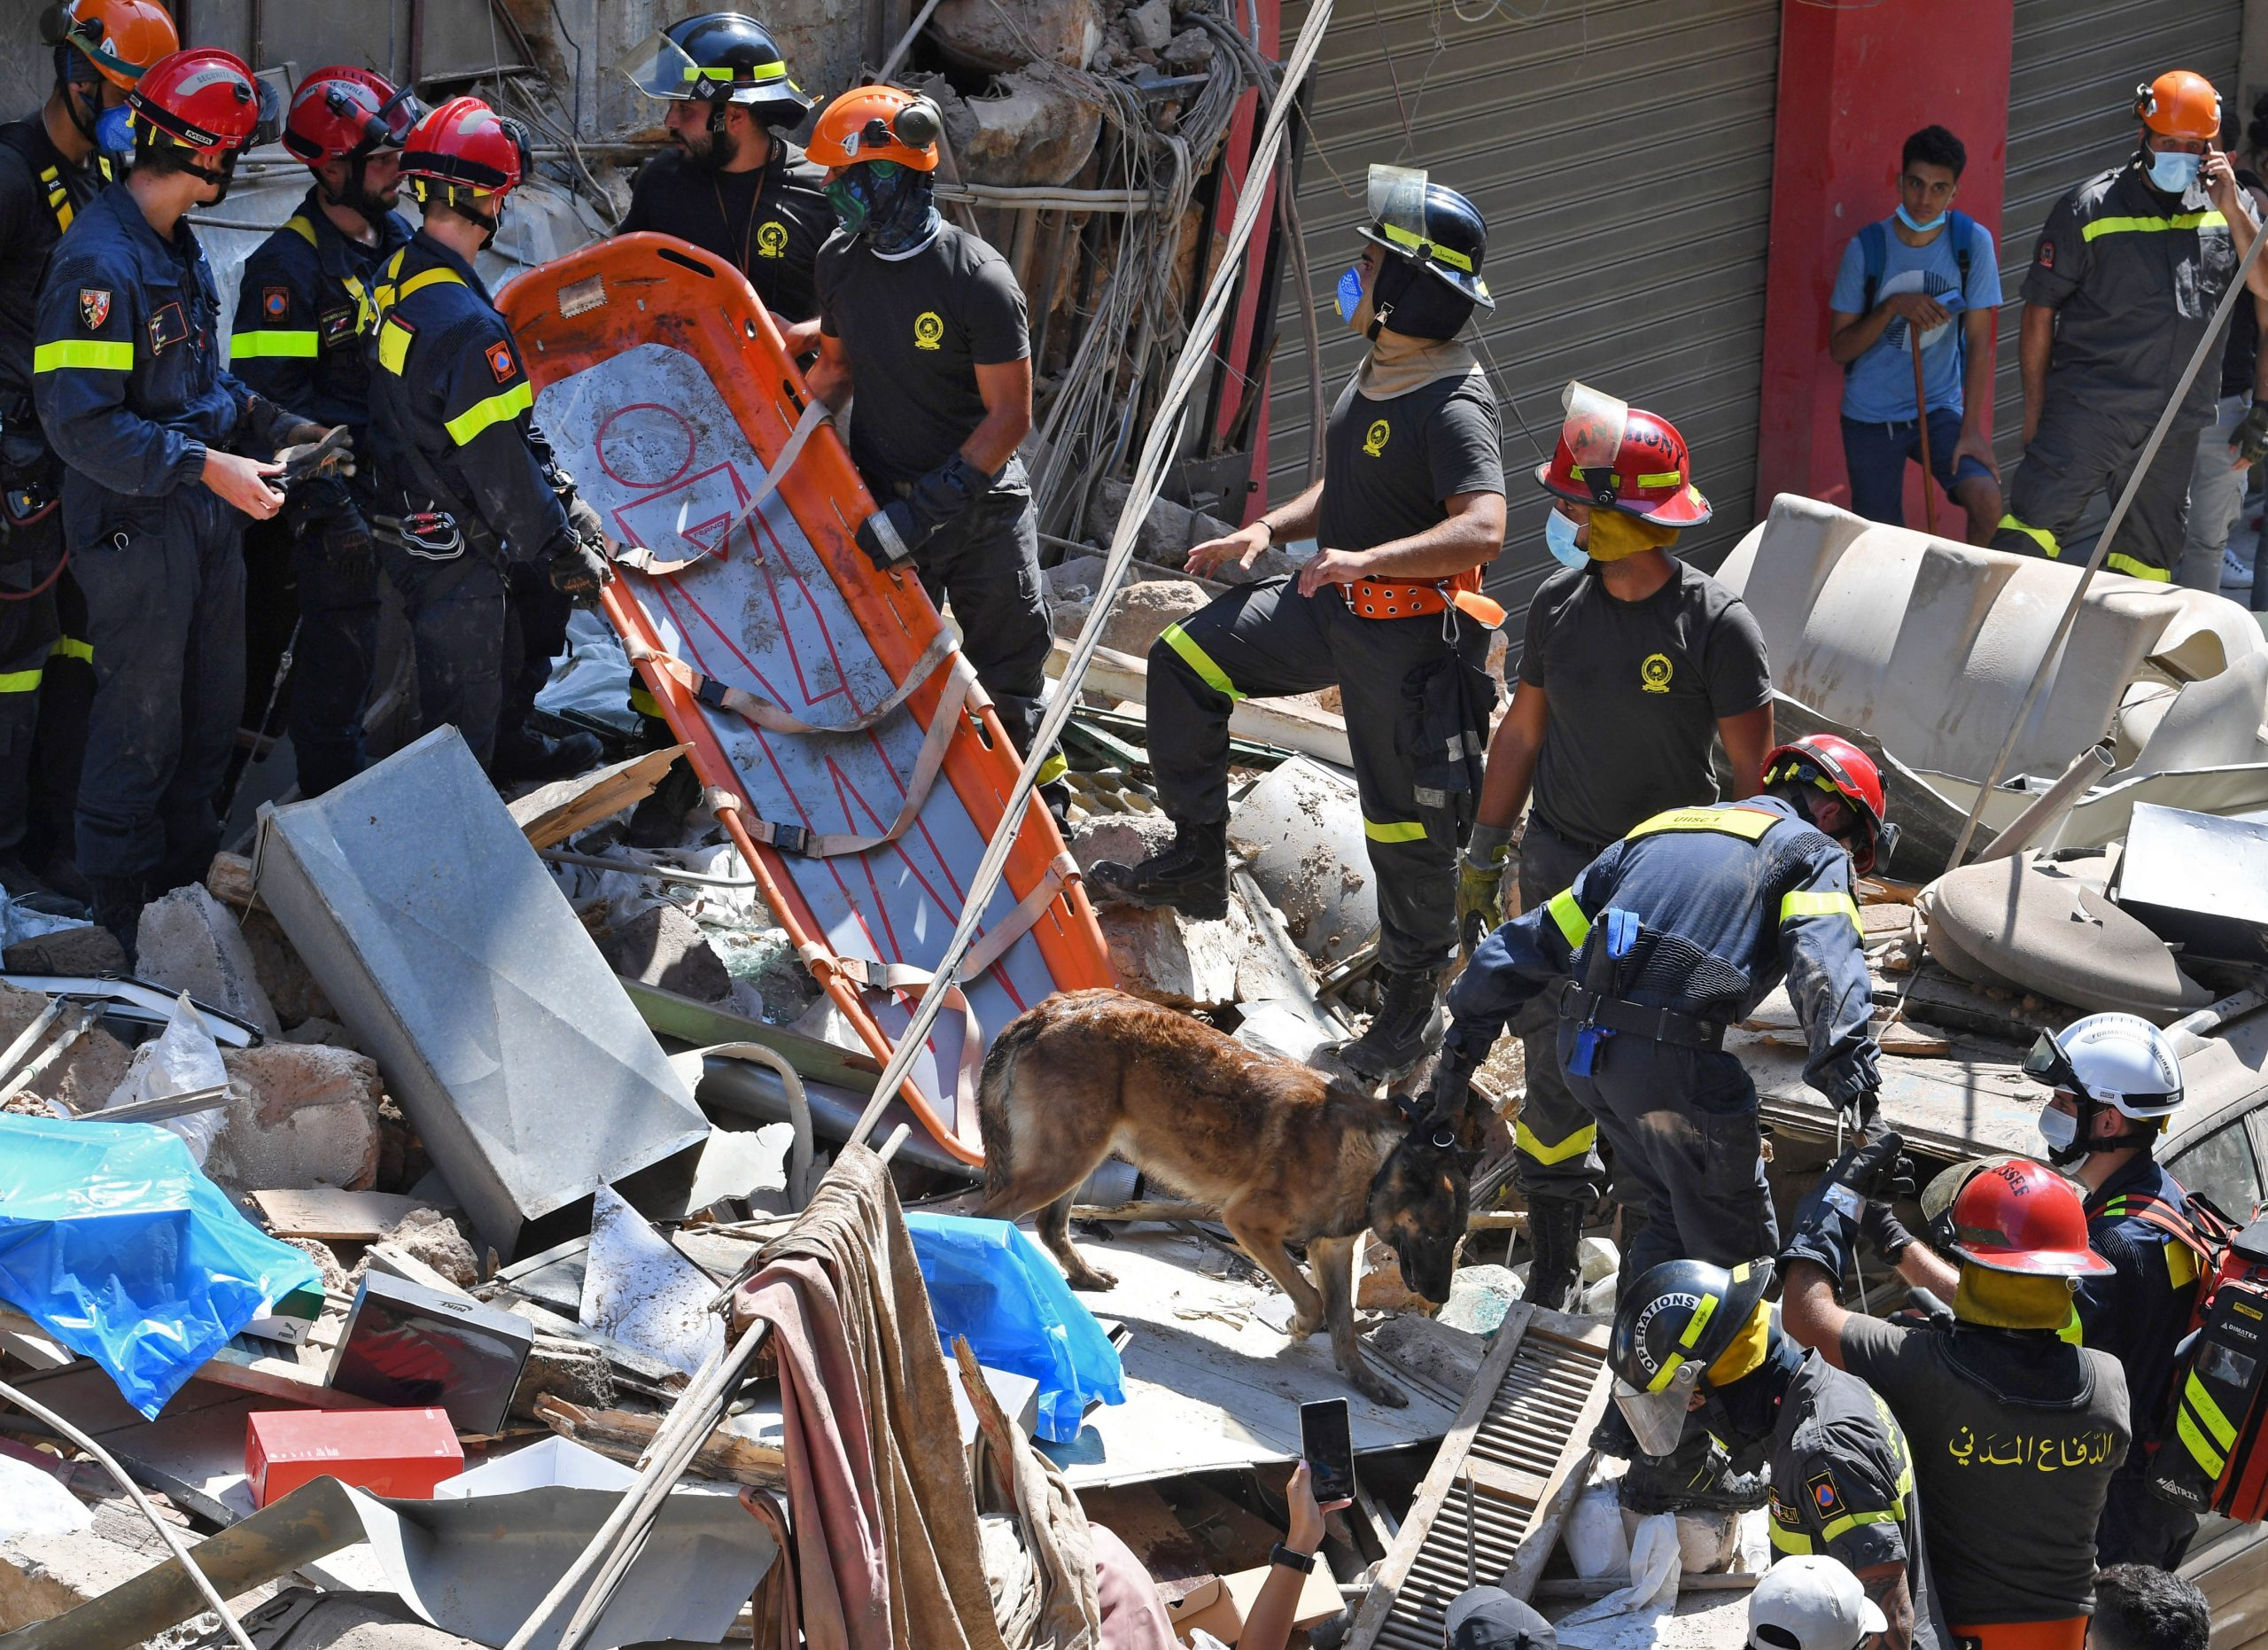 Lebanese and French rescuers search for victims or survivors amidst the rubble of a building in the Gemayzeh neighbourhood on August 6, 2020, two days after a massive explosion in the Beirut port shook the capital. (Photo by -/AFP via Getty Images)